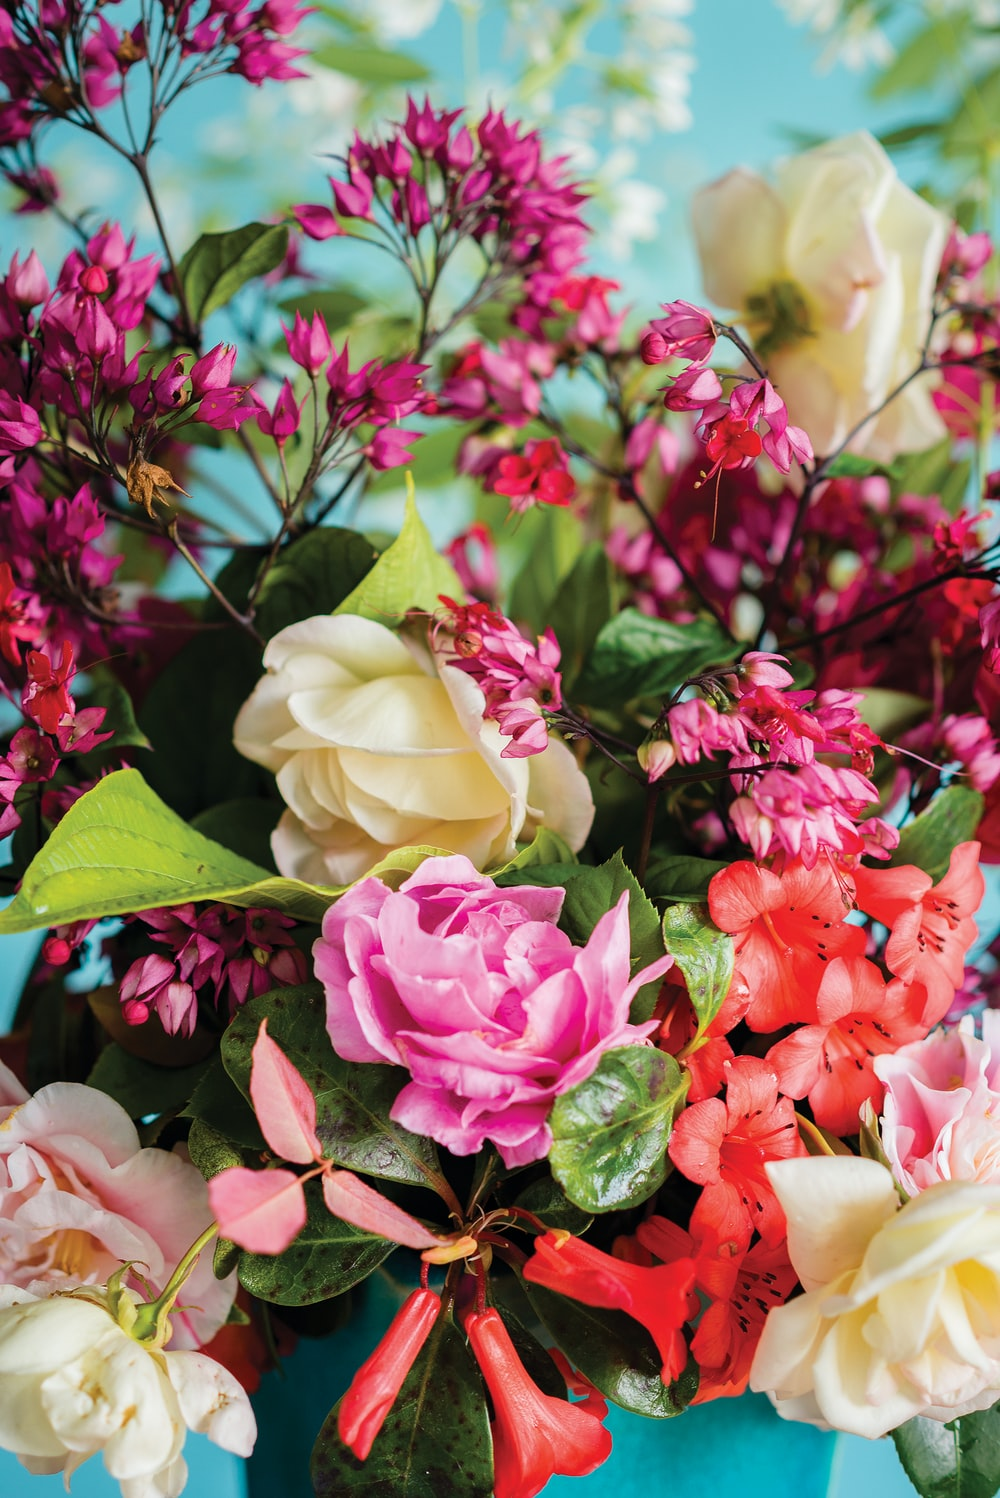 close-up photography of white, pink, and red petaled flower centerpiece